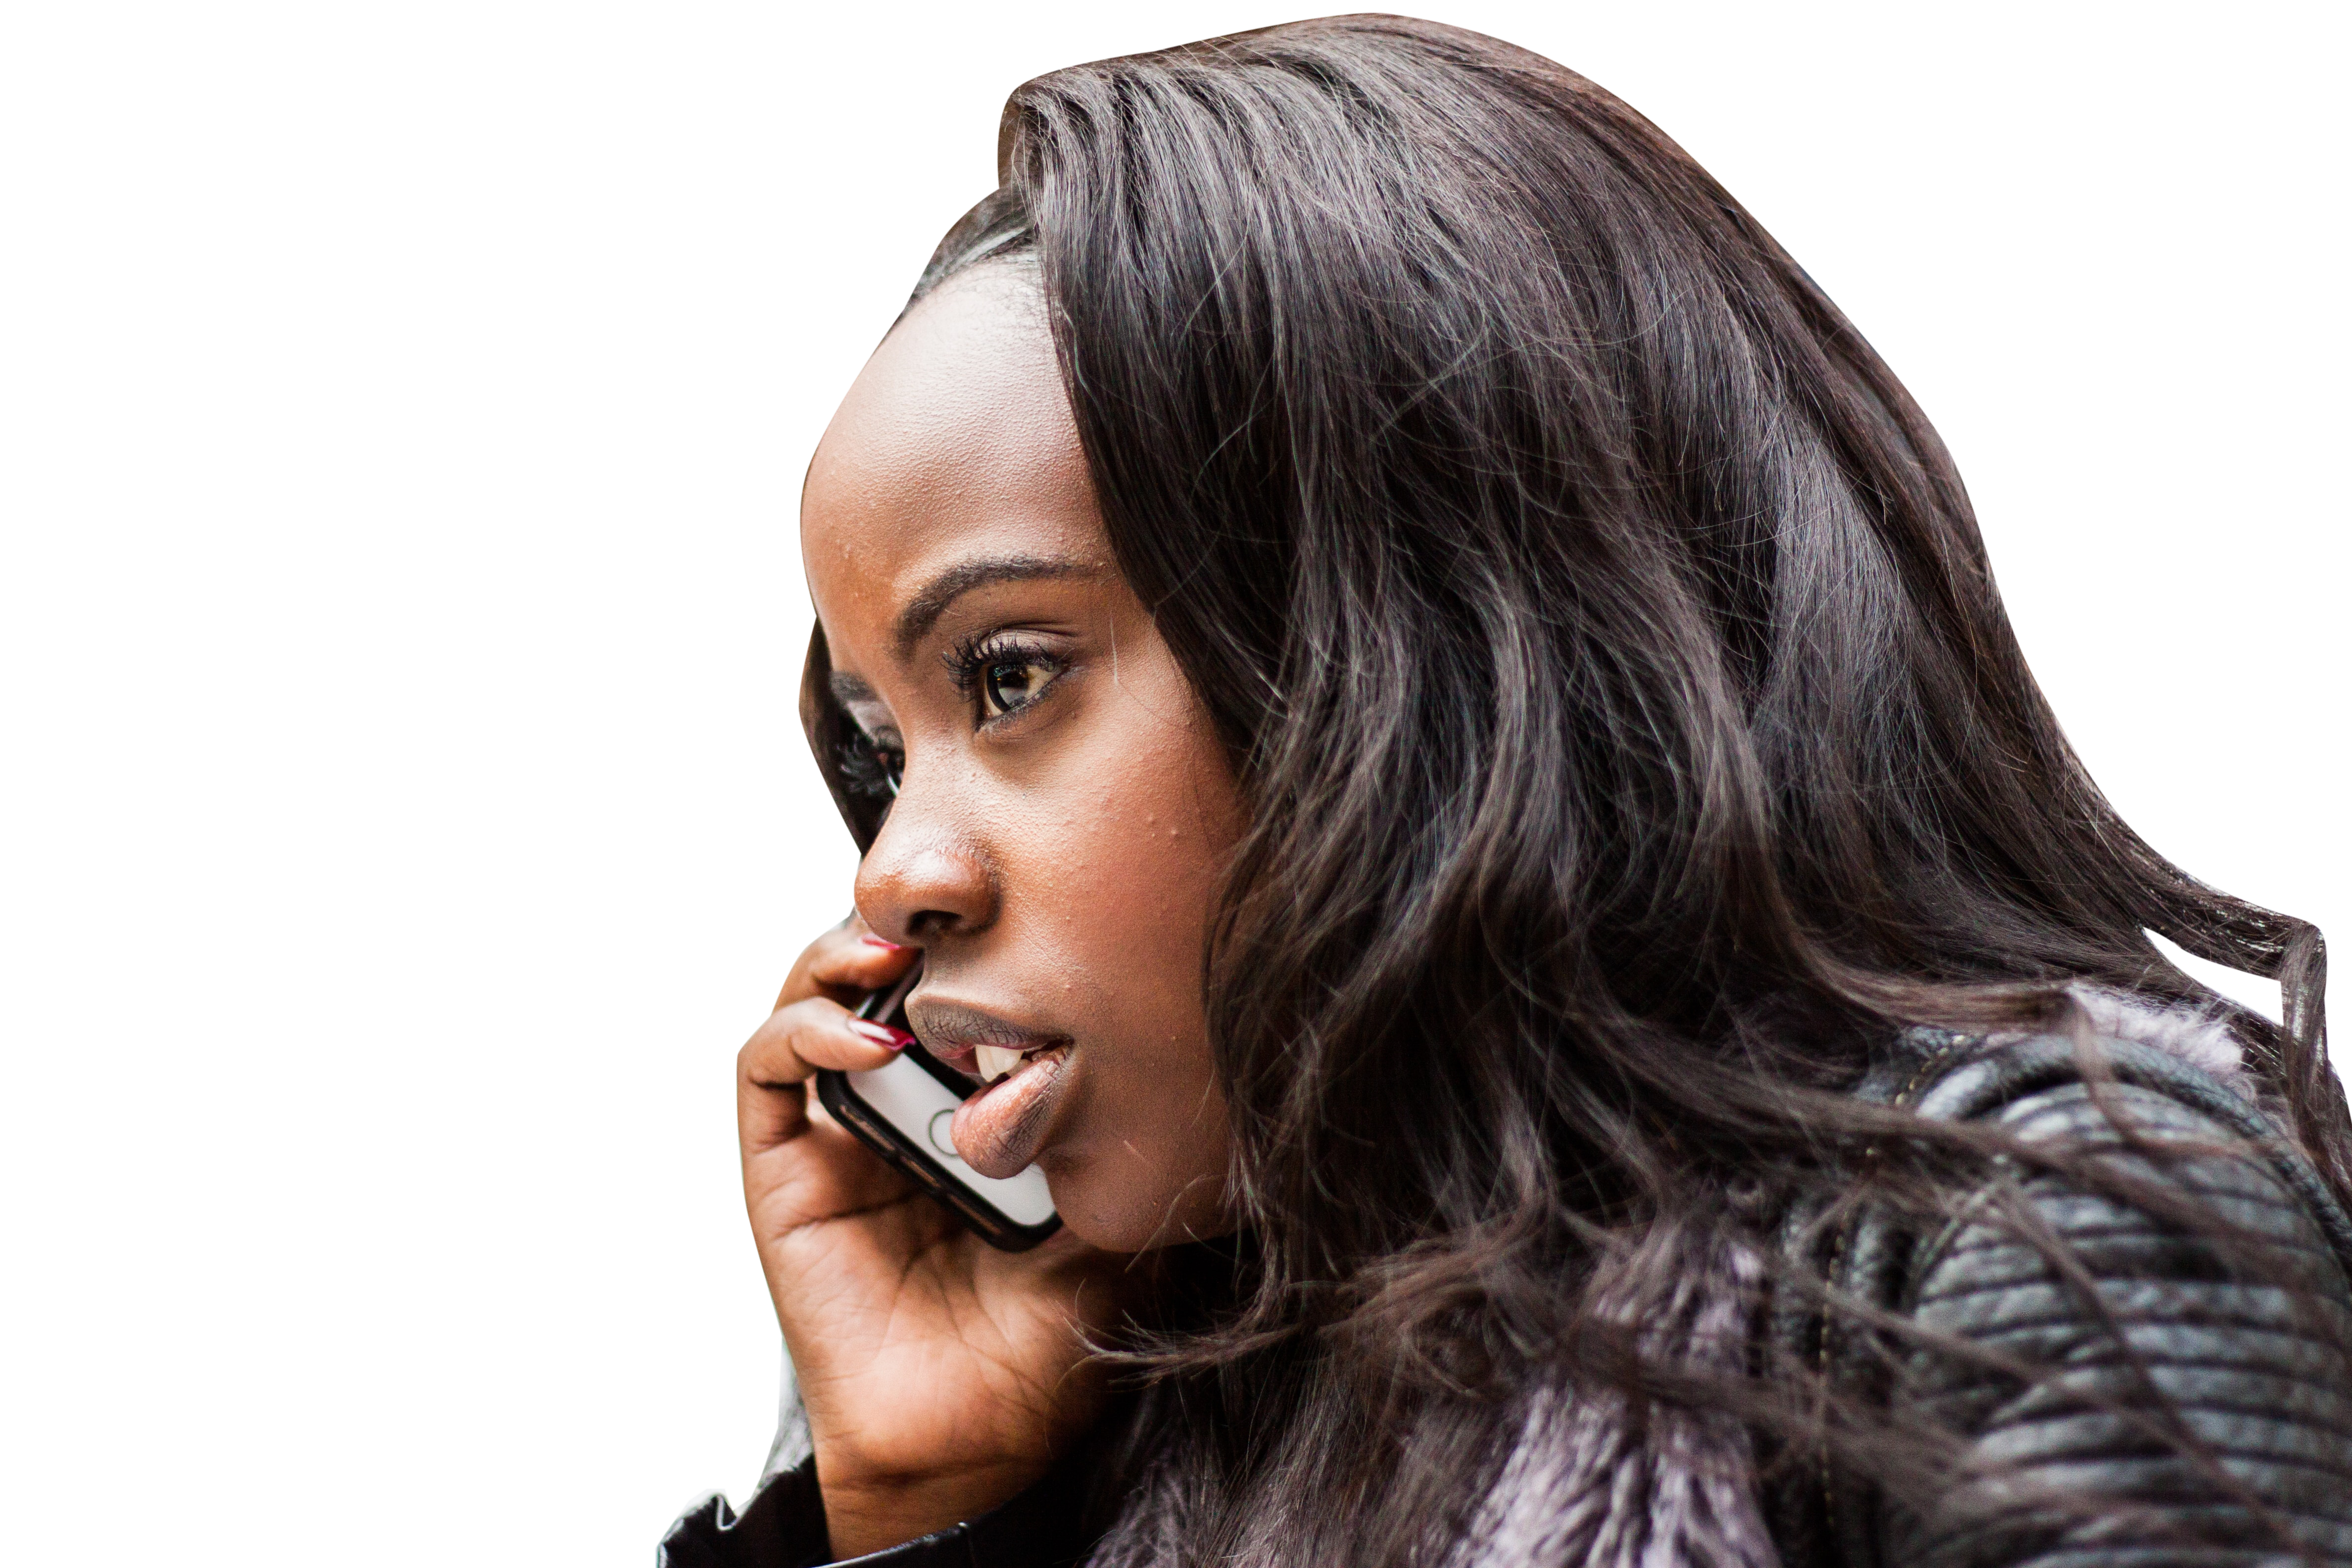 Girl listening call selfie  phone transparent Background PNG